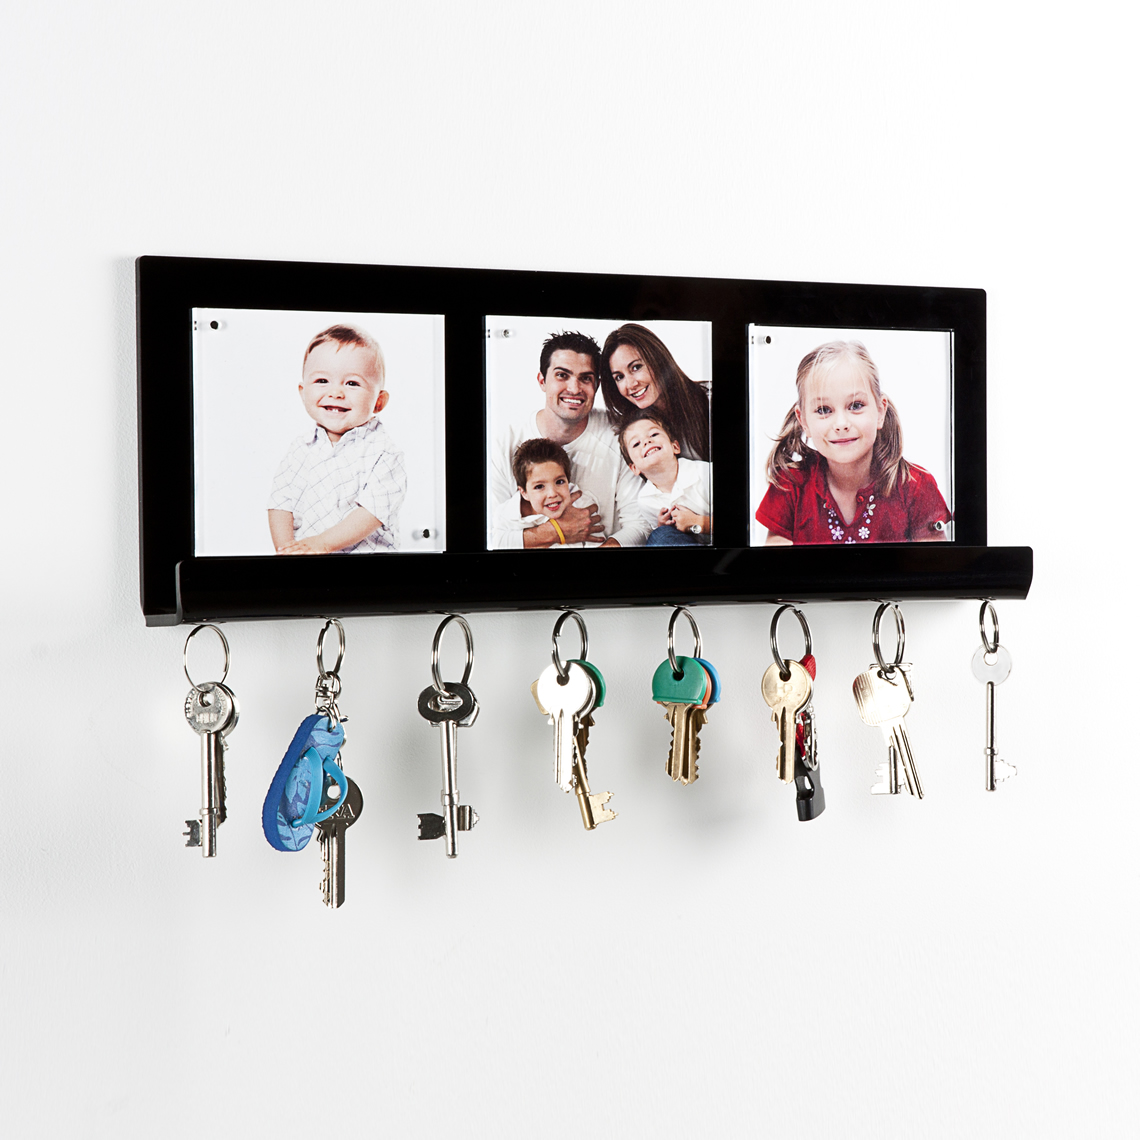 Home Key Holder For Wall Manage Your Keys In A Proper Place With Impressive Key Holders For